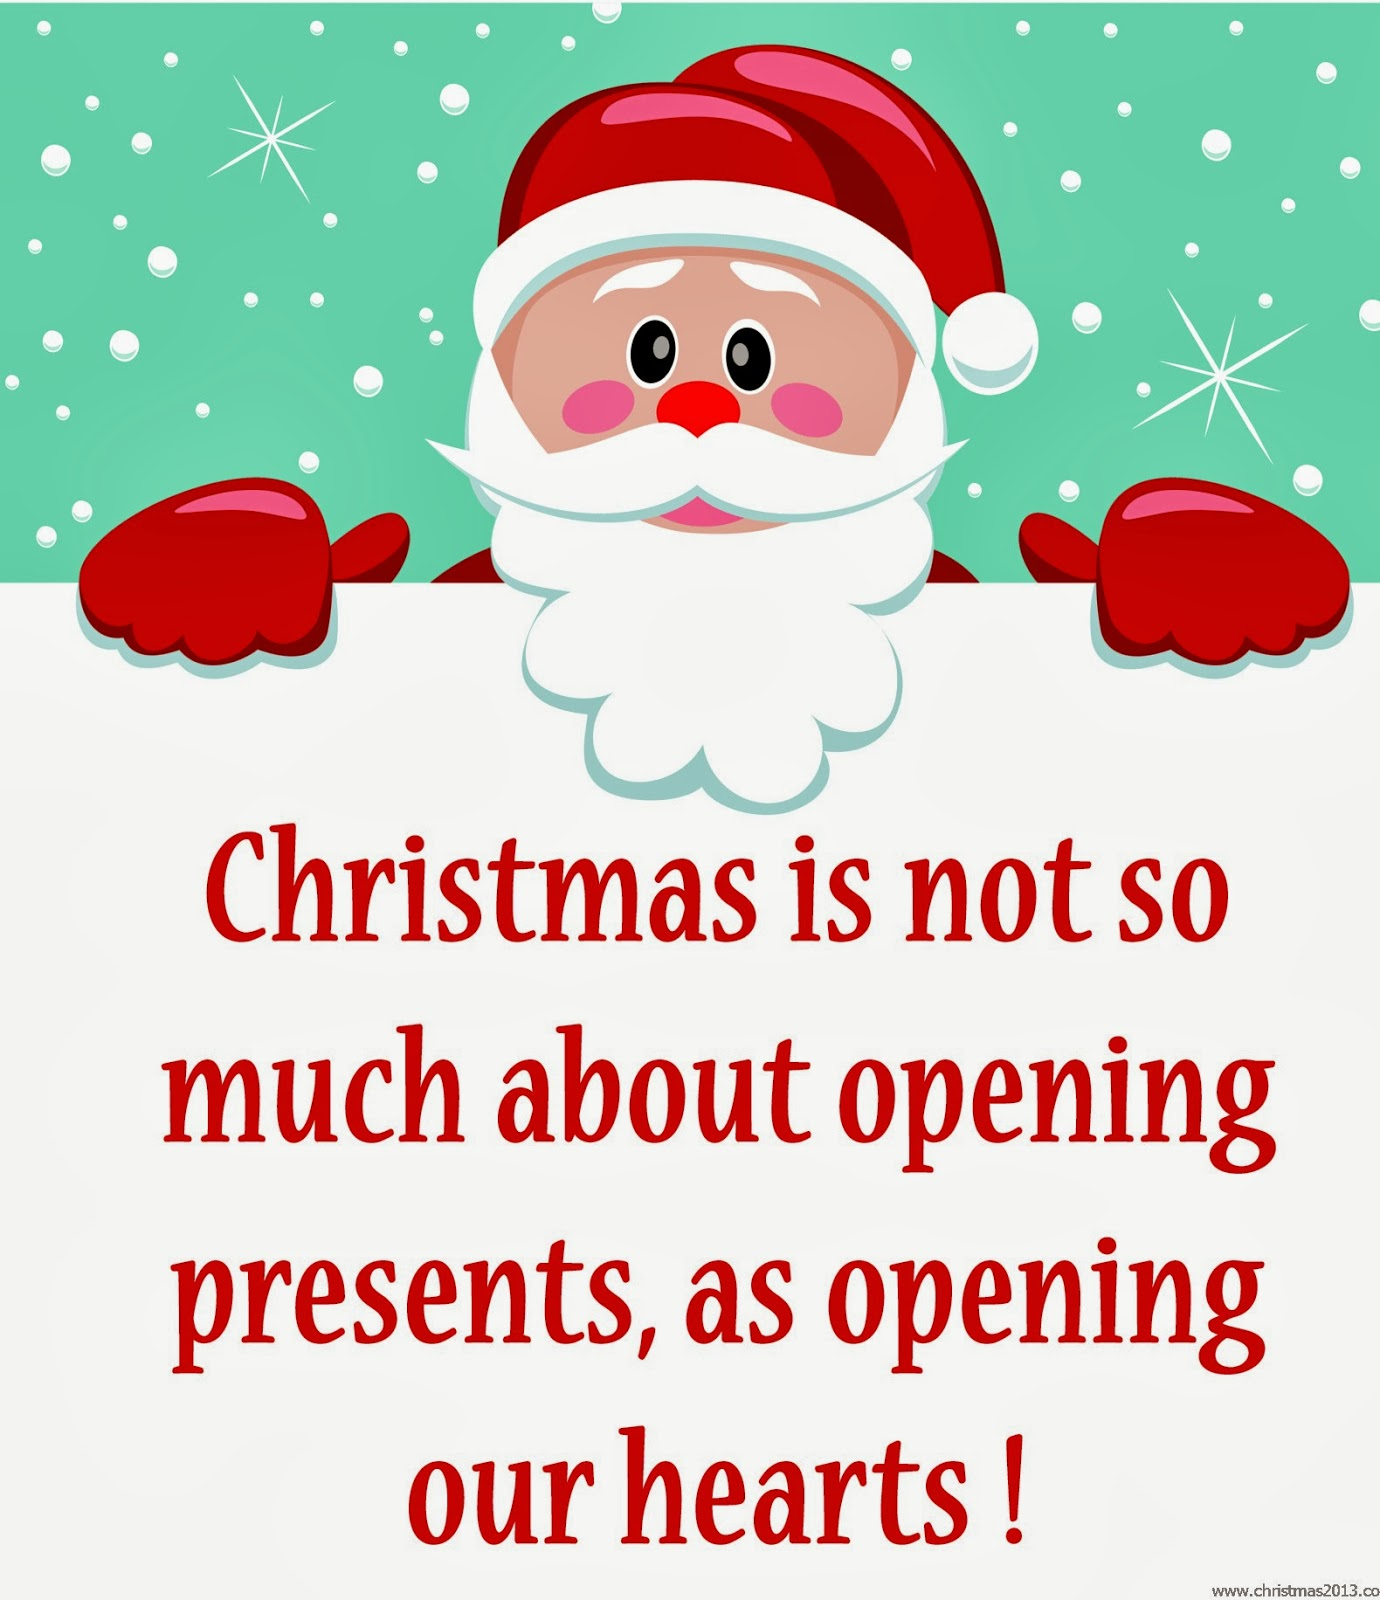 Christmas Quotes For Cards: 25 Best Christmas Quotes And Wishes